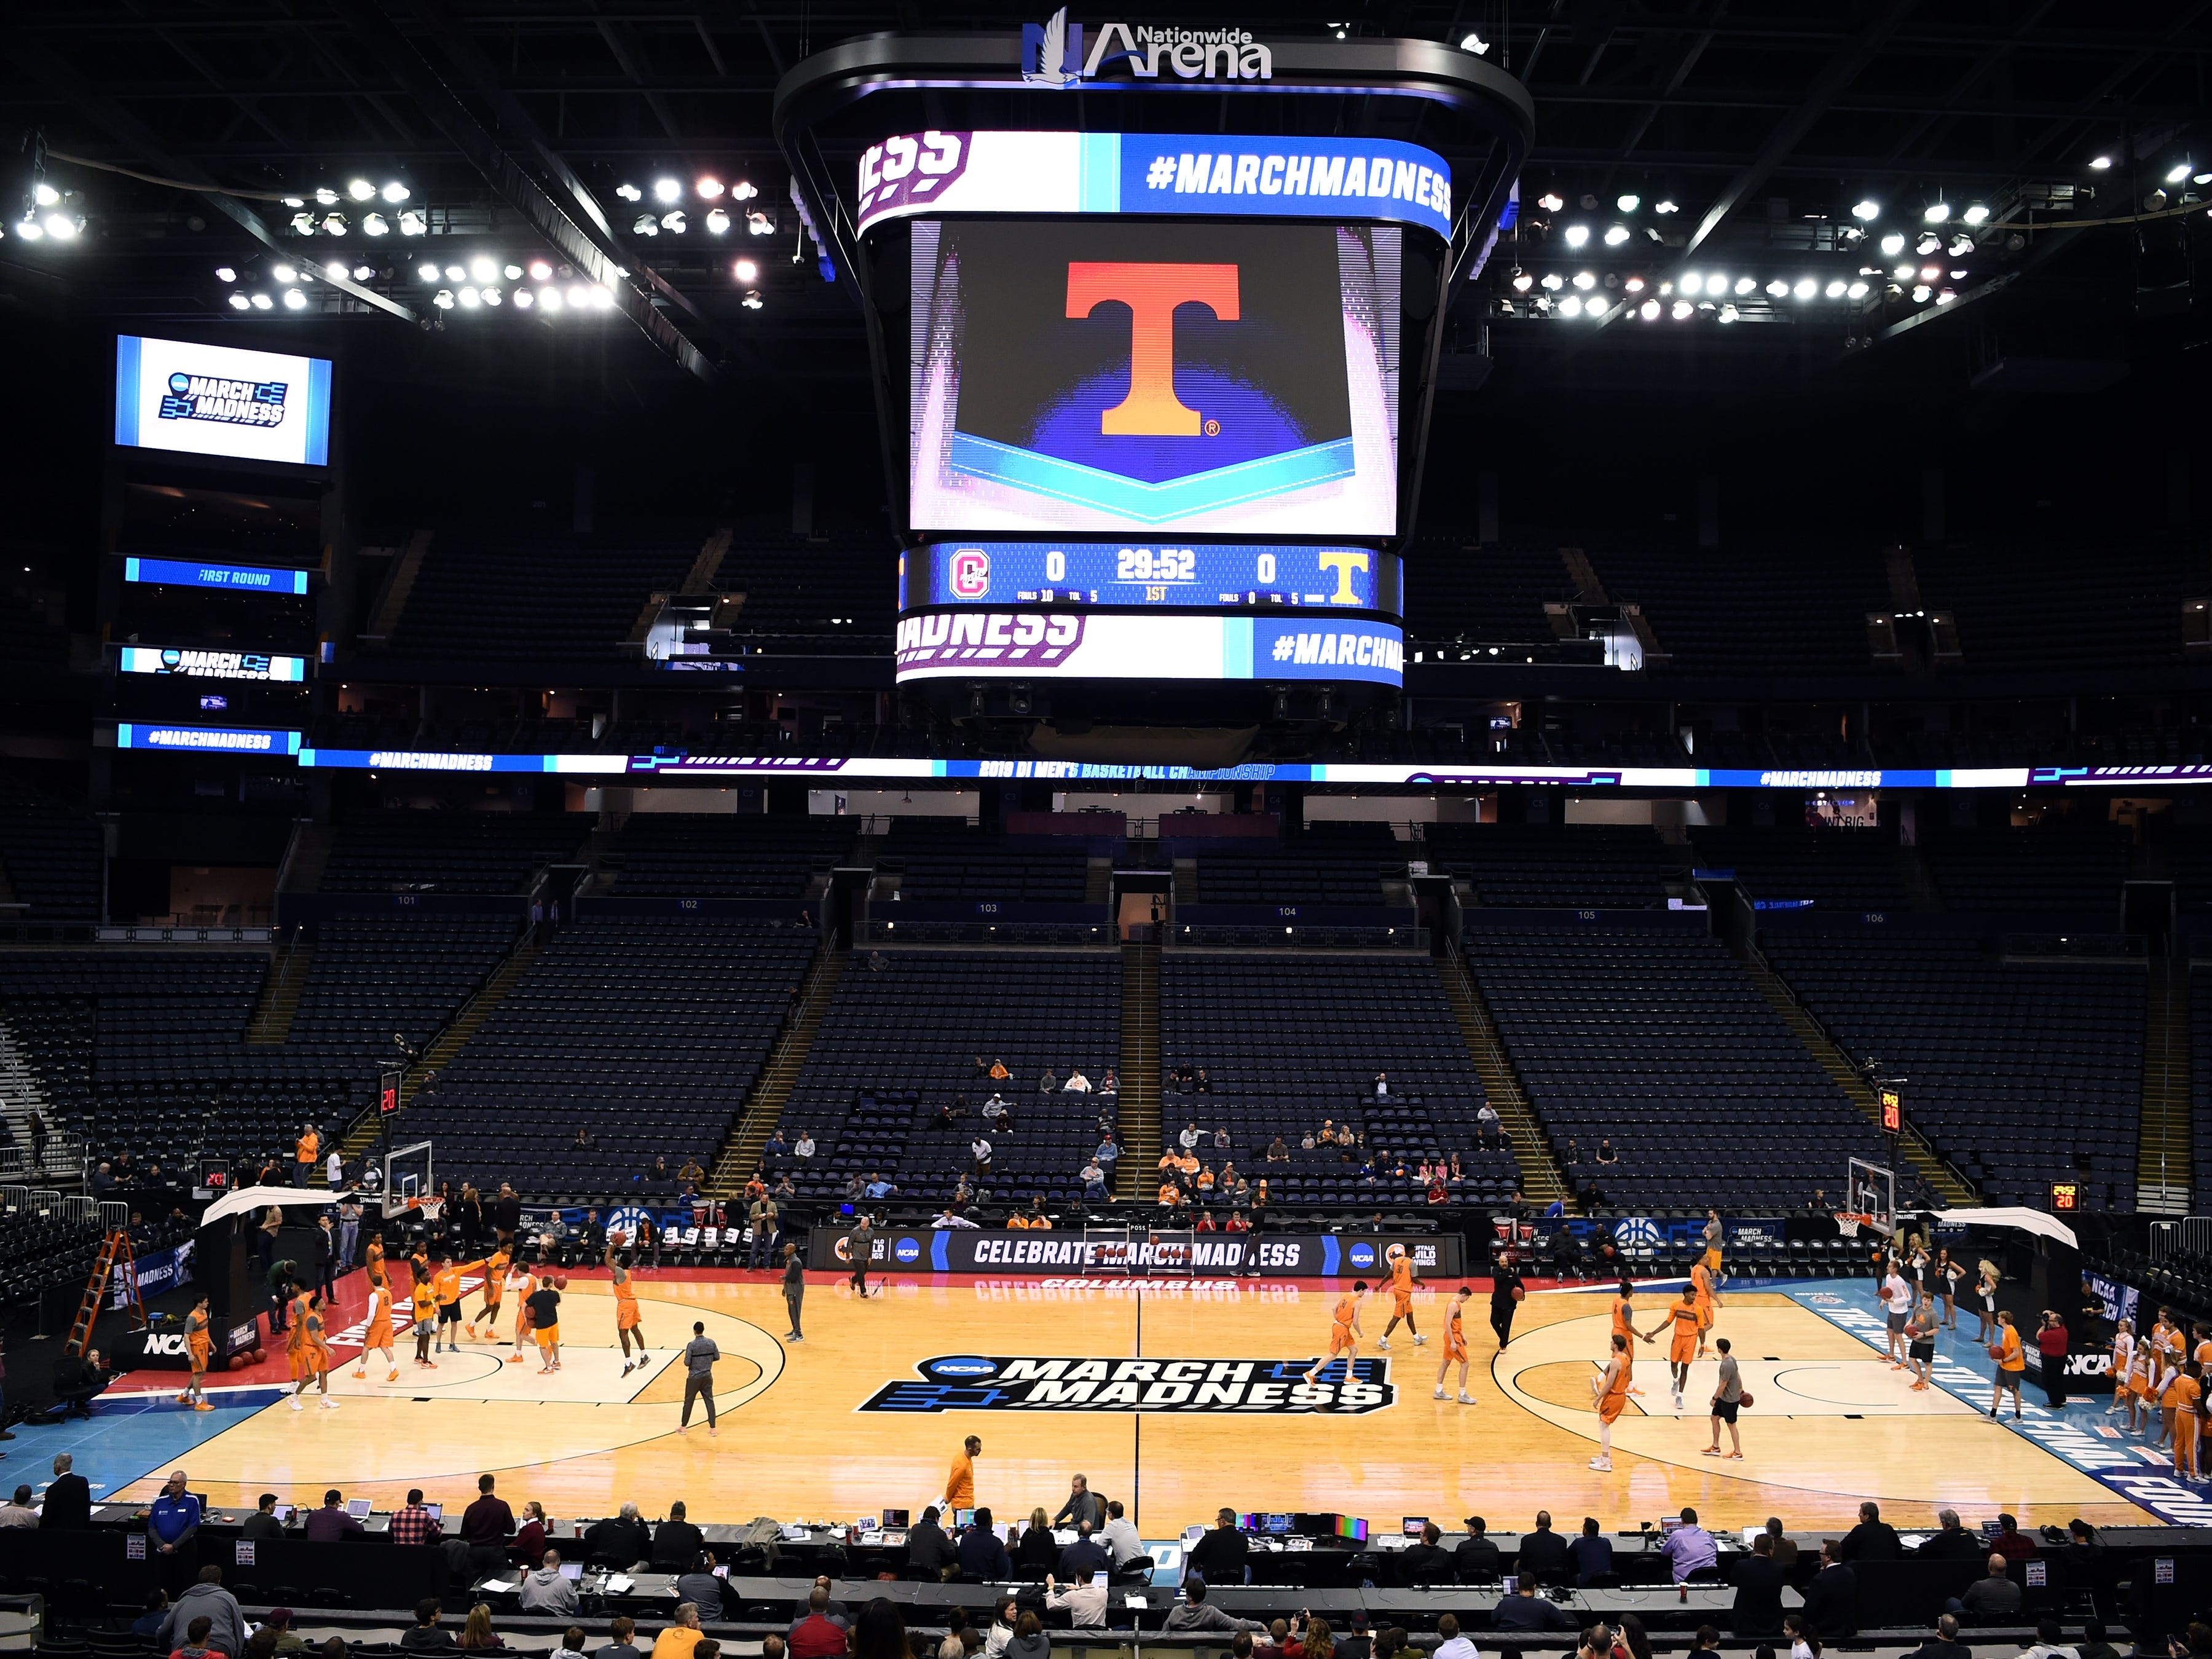 Tennessee basketball practice on Thursday, March 21, 2019, before their first round NCAA Tournament game against Colgate at Nationwide Arena in Columbus, Ohio.